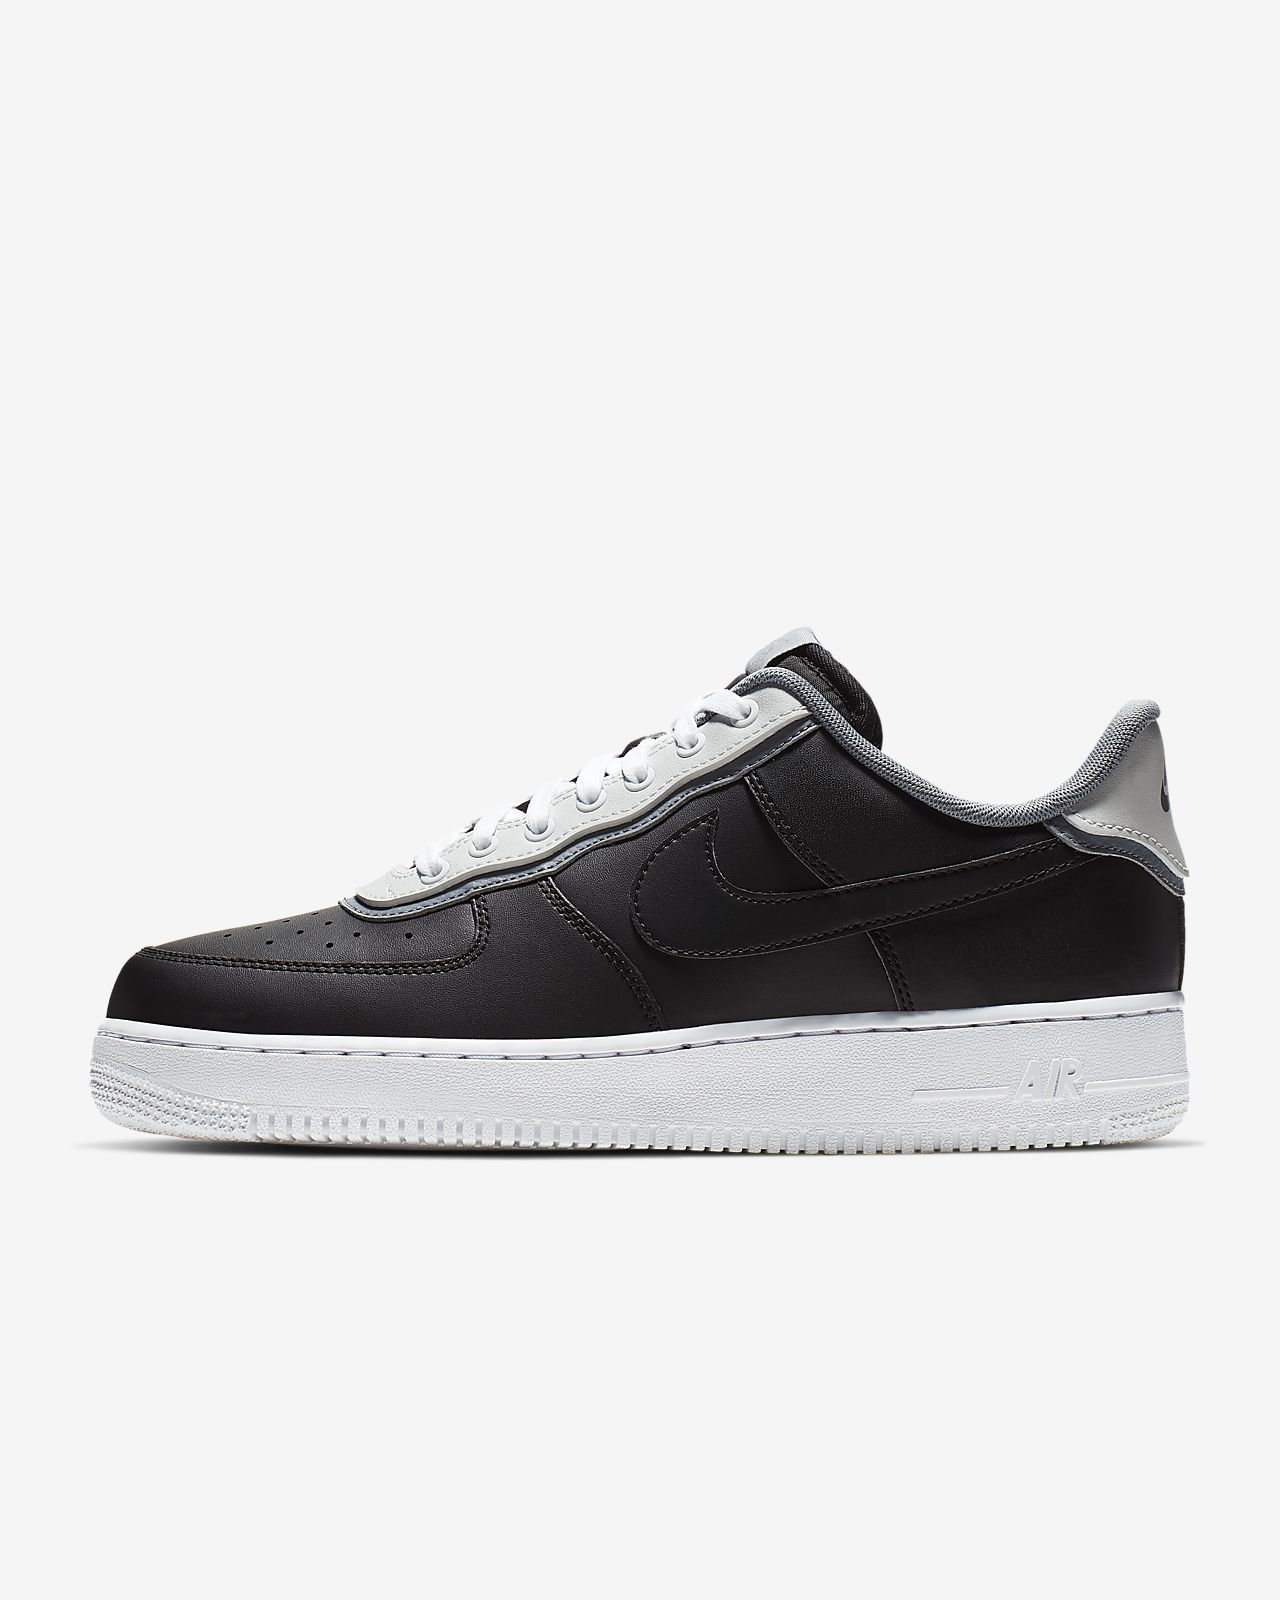 Nike Air Force 1 '07 LV8 1 Herenschoen